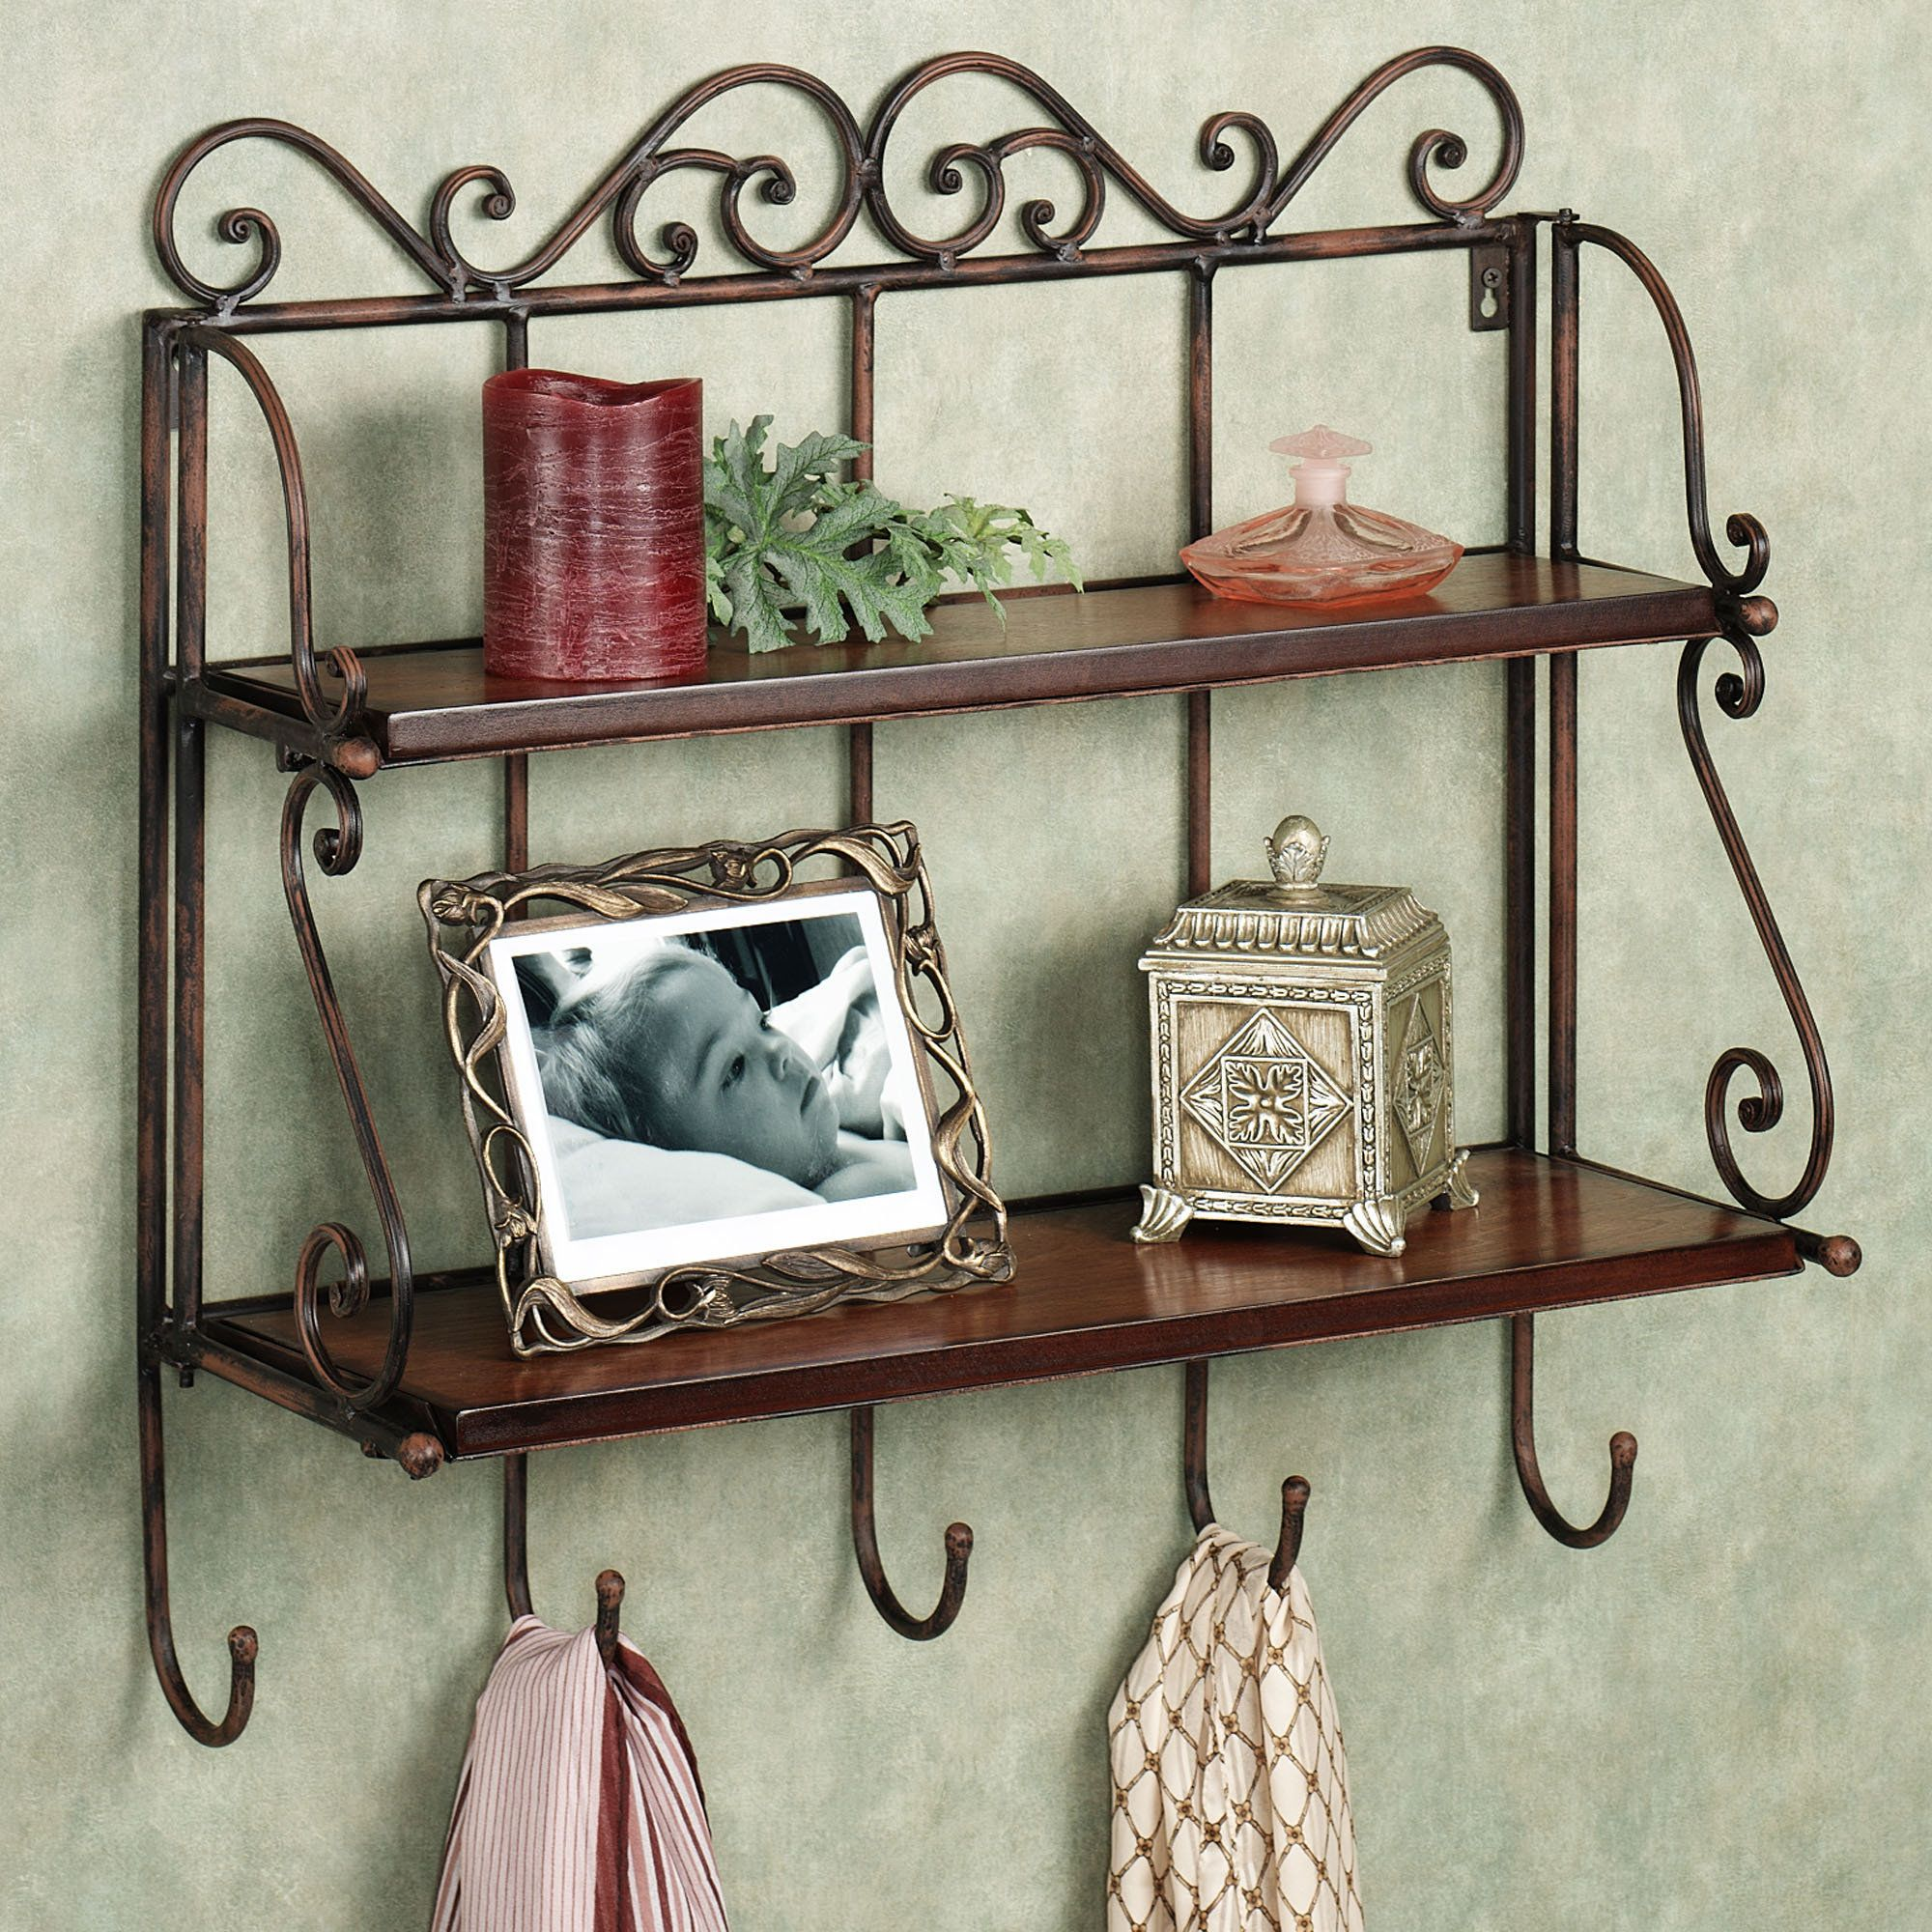 Carenza Double Wall Shelf | Ideas for the House | Pinterest ...